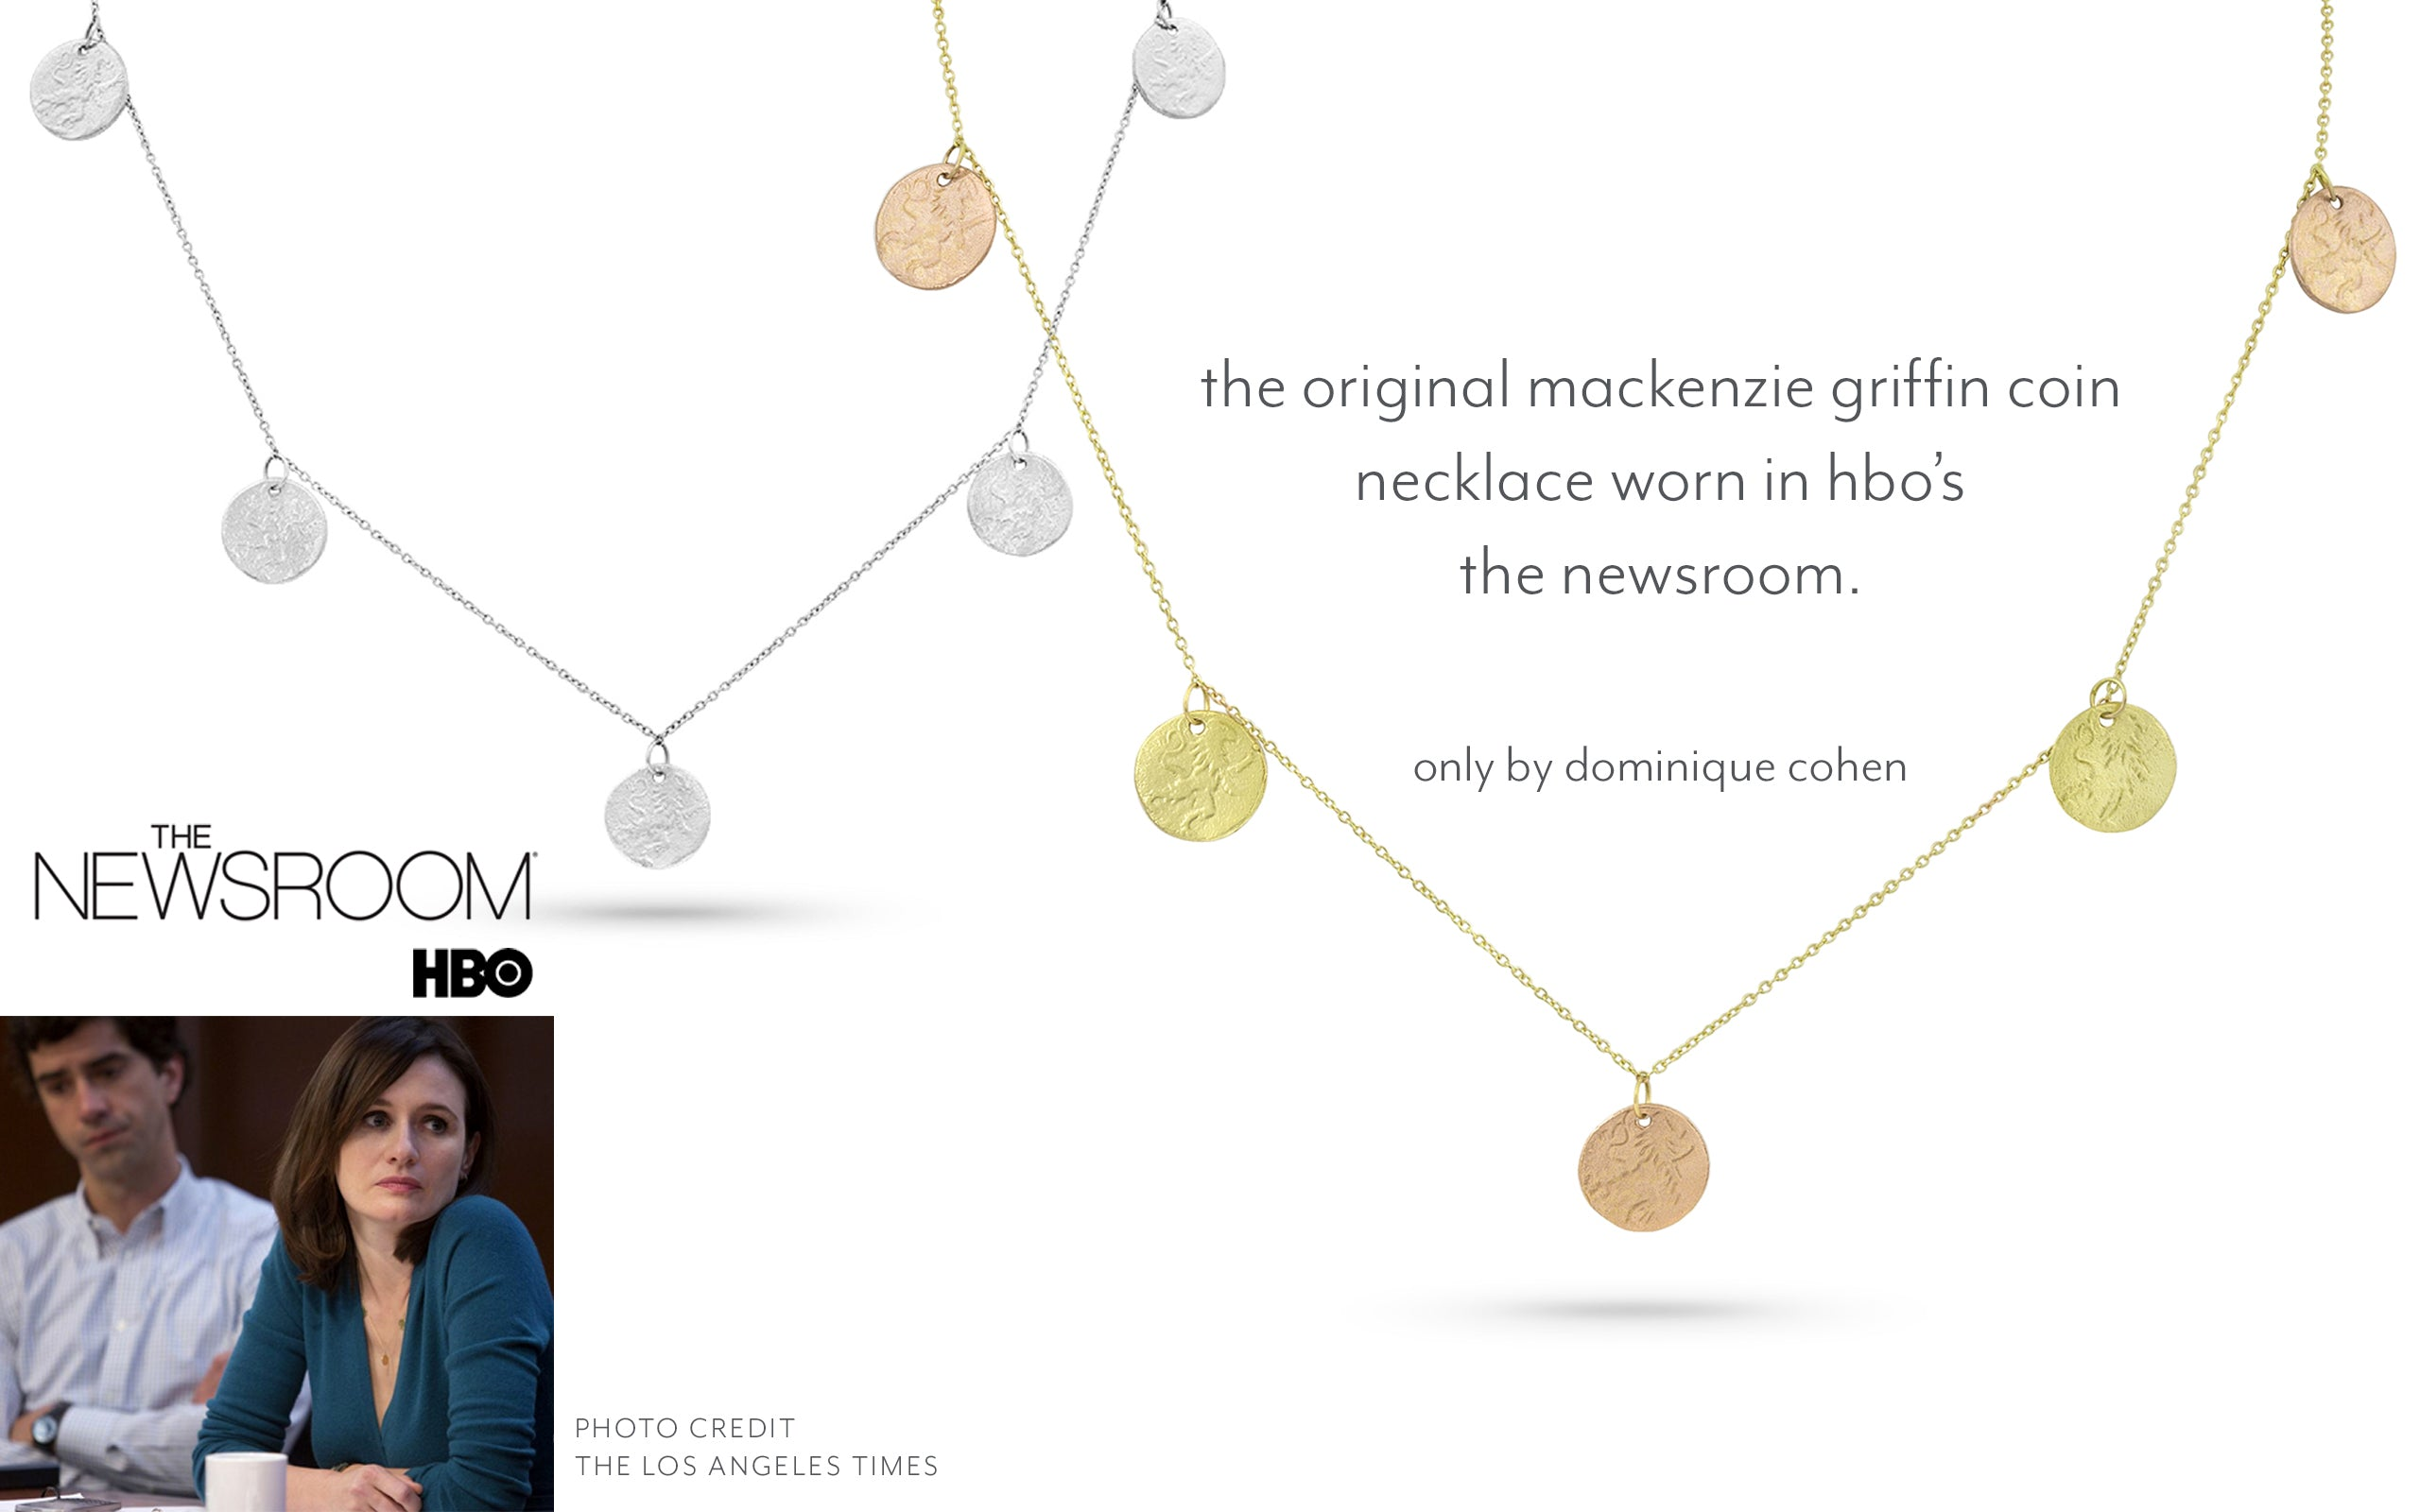 HBO The Newsroom still with Mackenzie McHale wearing our five-coin necklace; call 323-404-2959 if you need shopping assistance